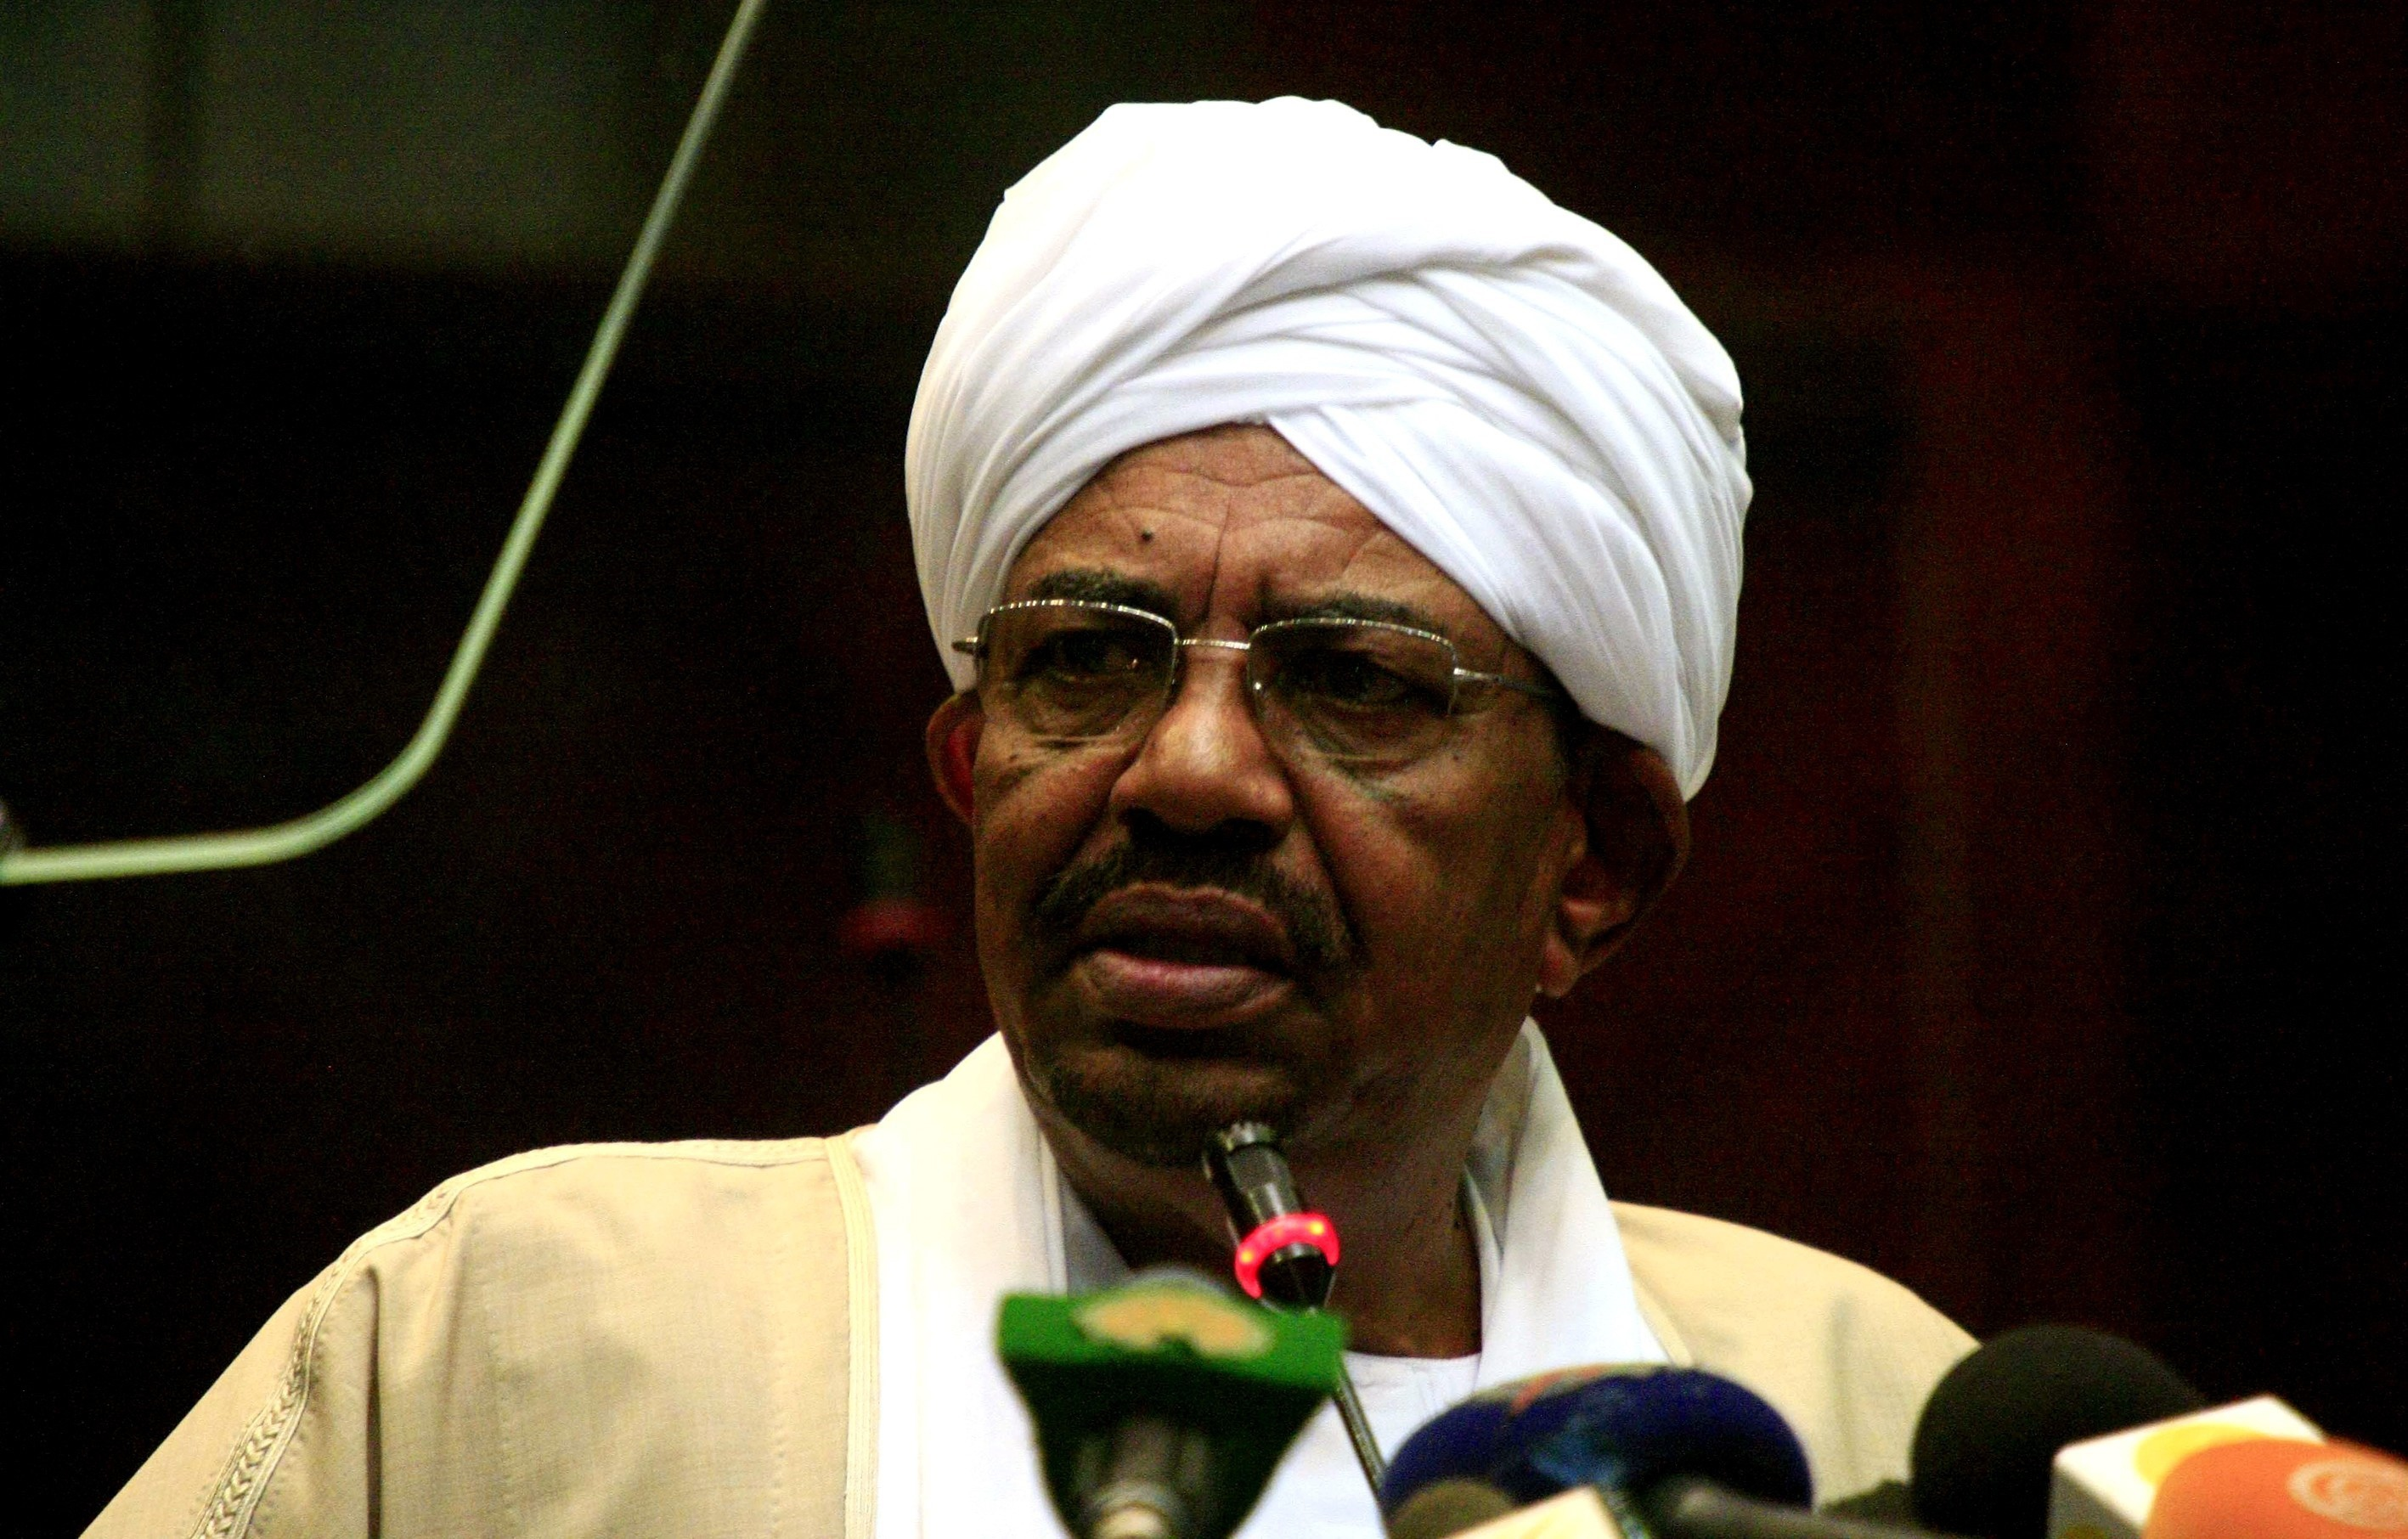 Sudanese President  Omar al-Bashir addresses the National Legislature's Second Session on Oct. 19, 2015, in Khartoum, Sudan